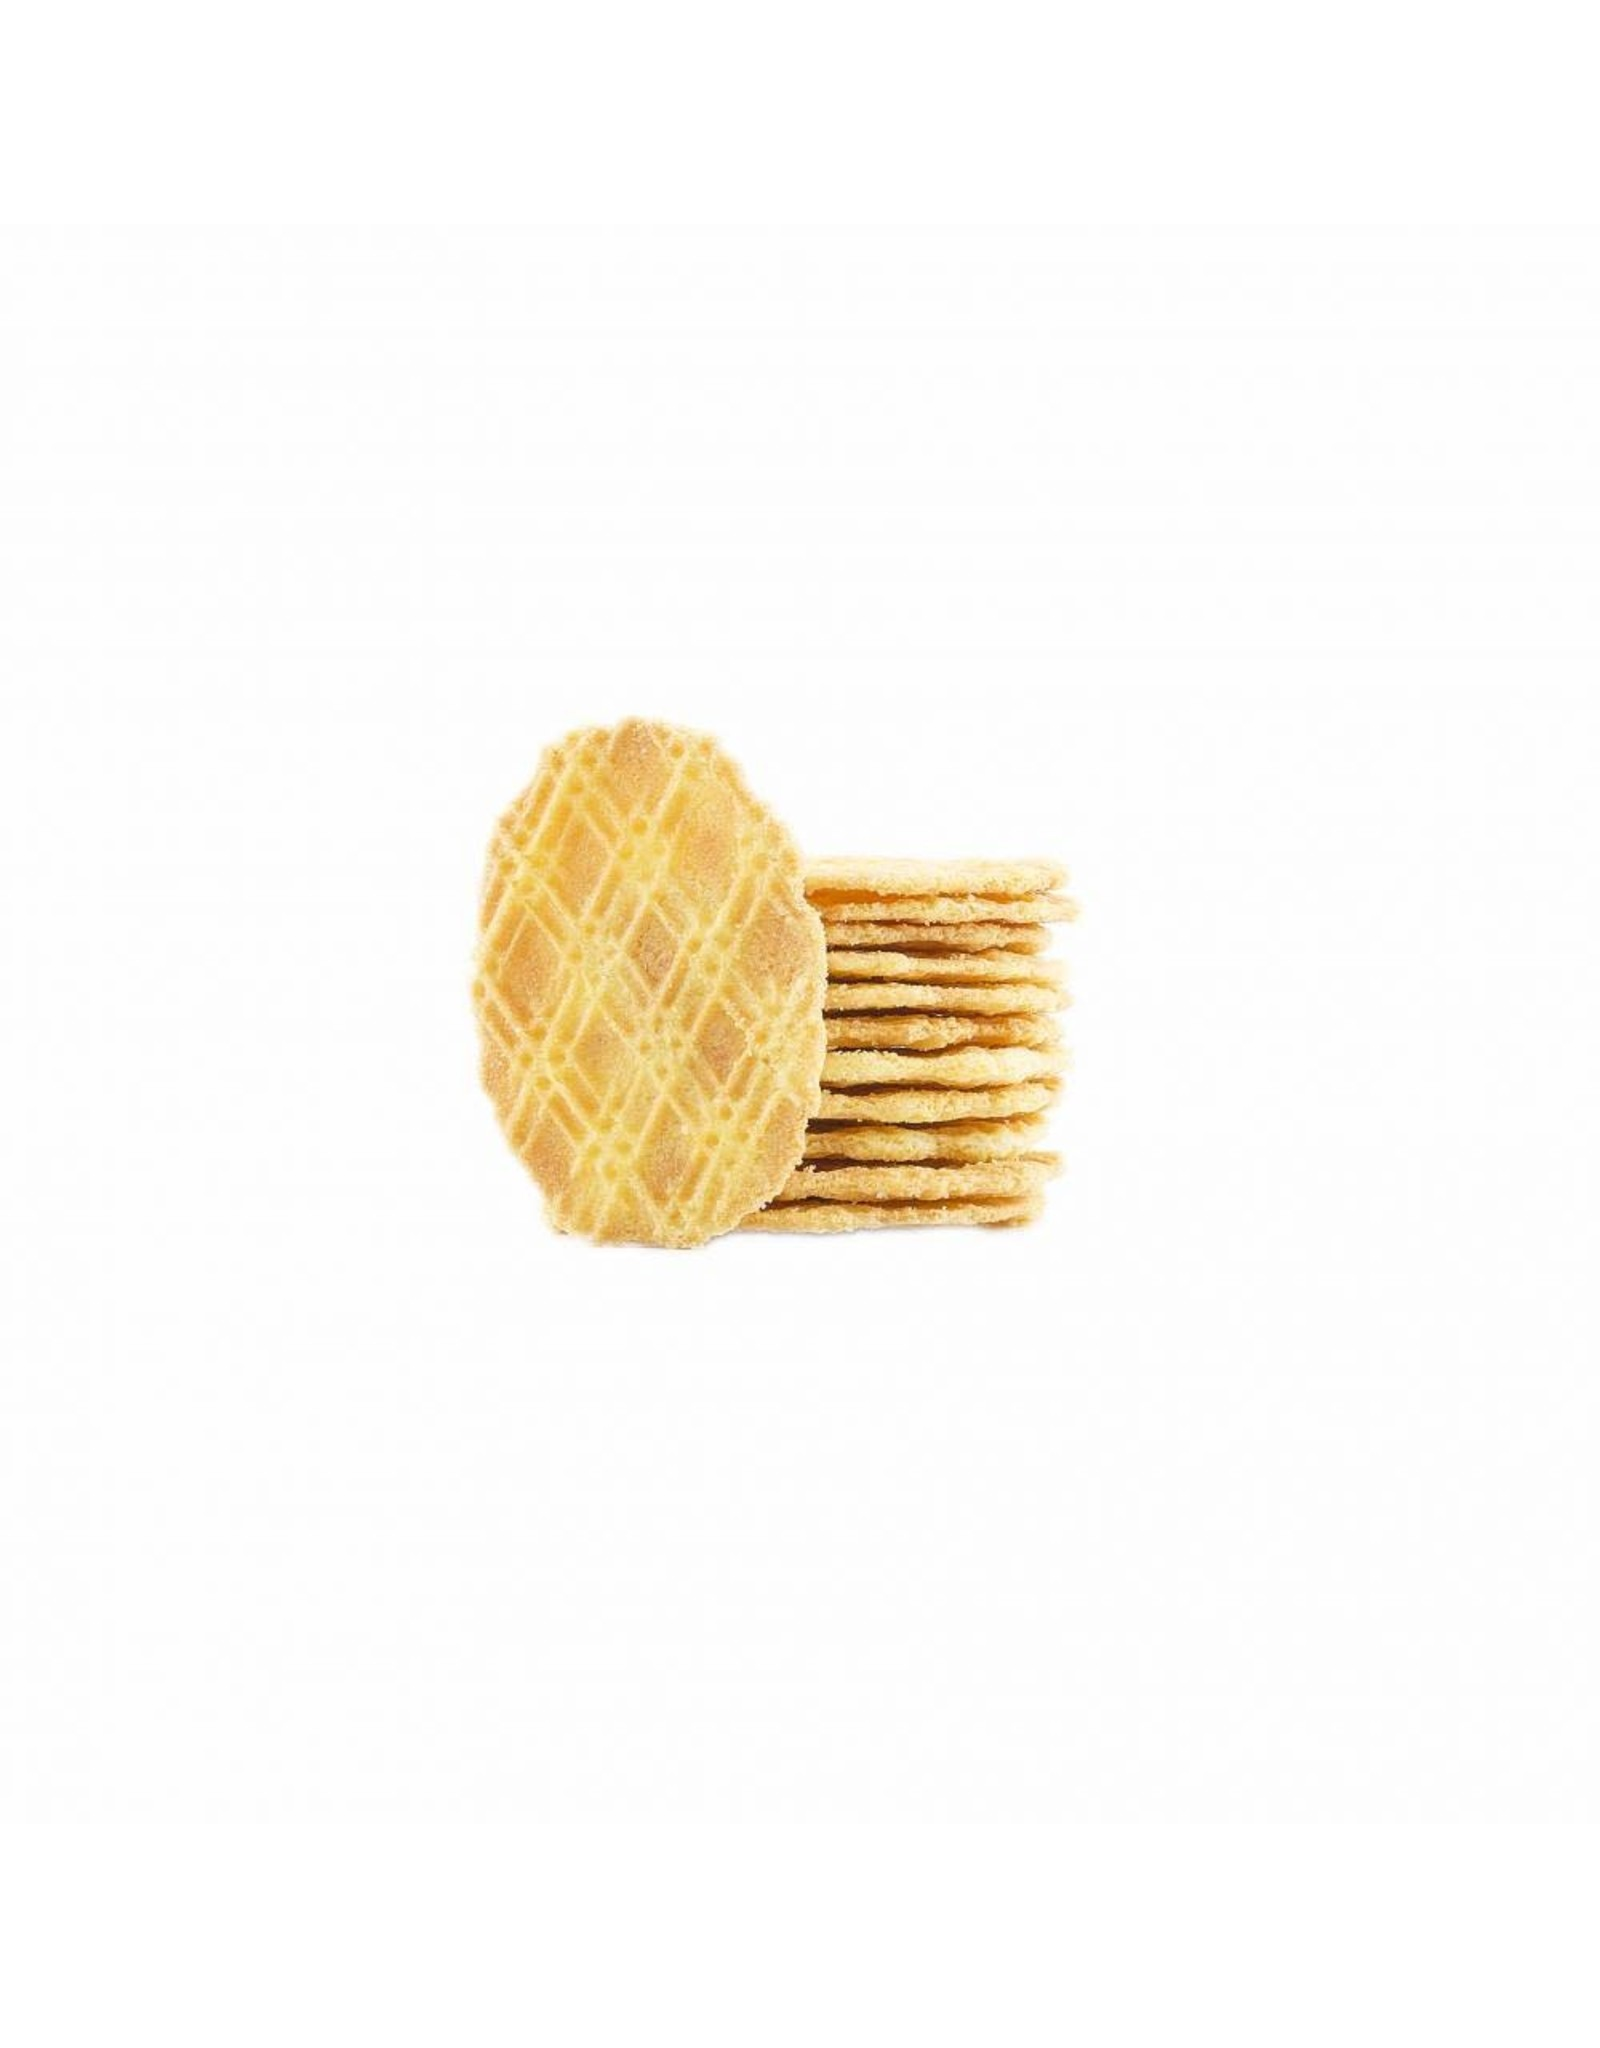 VERDUIJN'S FINE BISCUITS VERDUIJN'S FINE BISCUITS 6750 75GRAM BUTTER WAFERS TRADITIONALLY BAKED